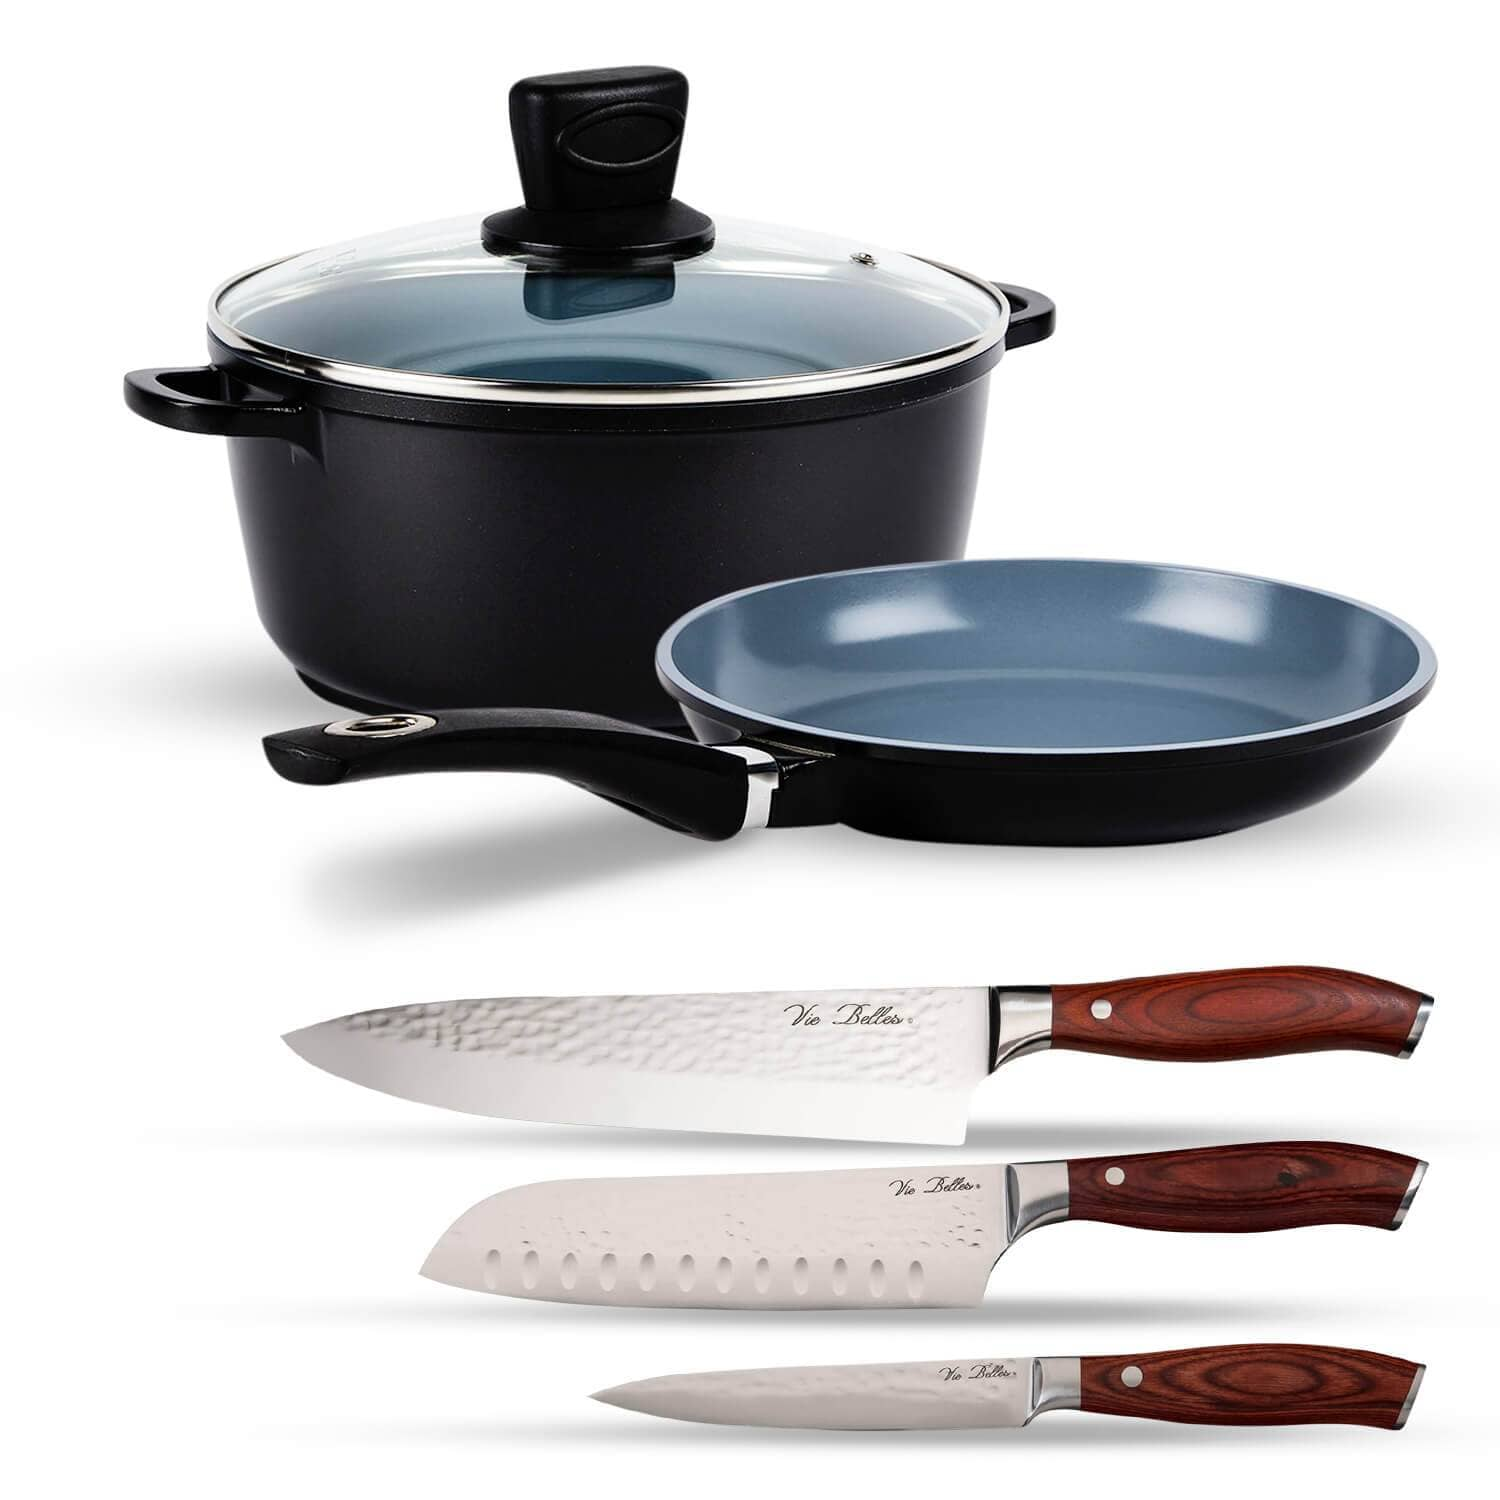 Cookware Knife Bundles